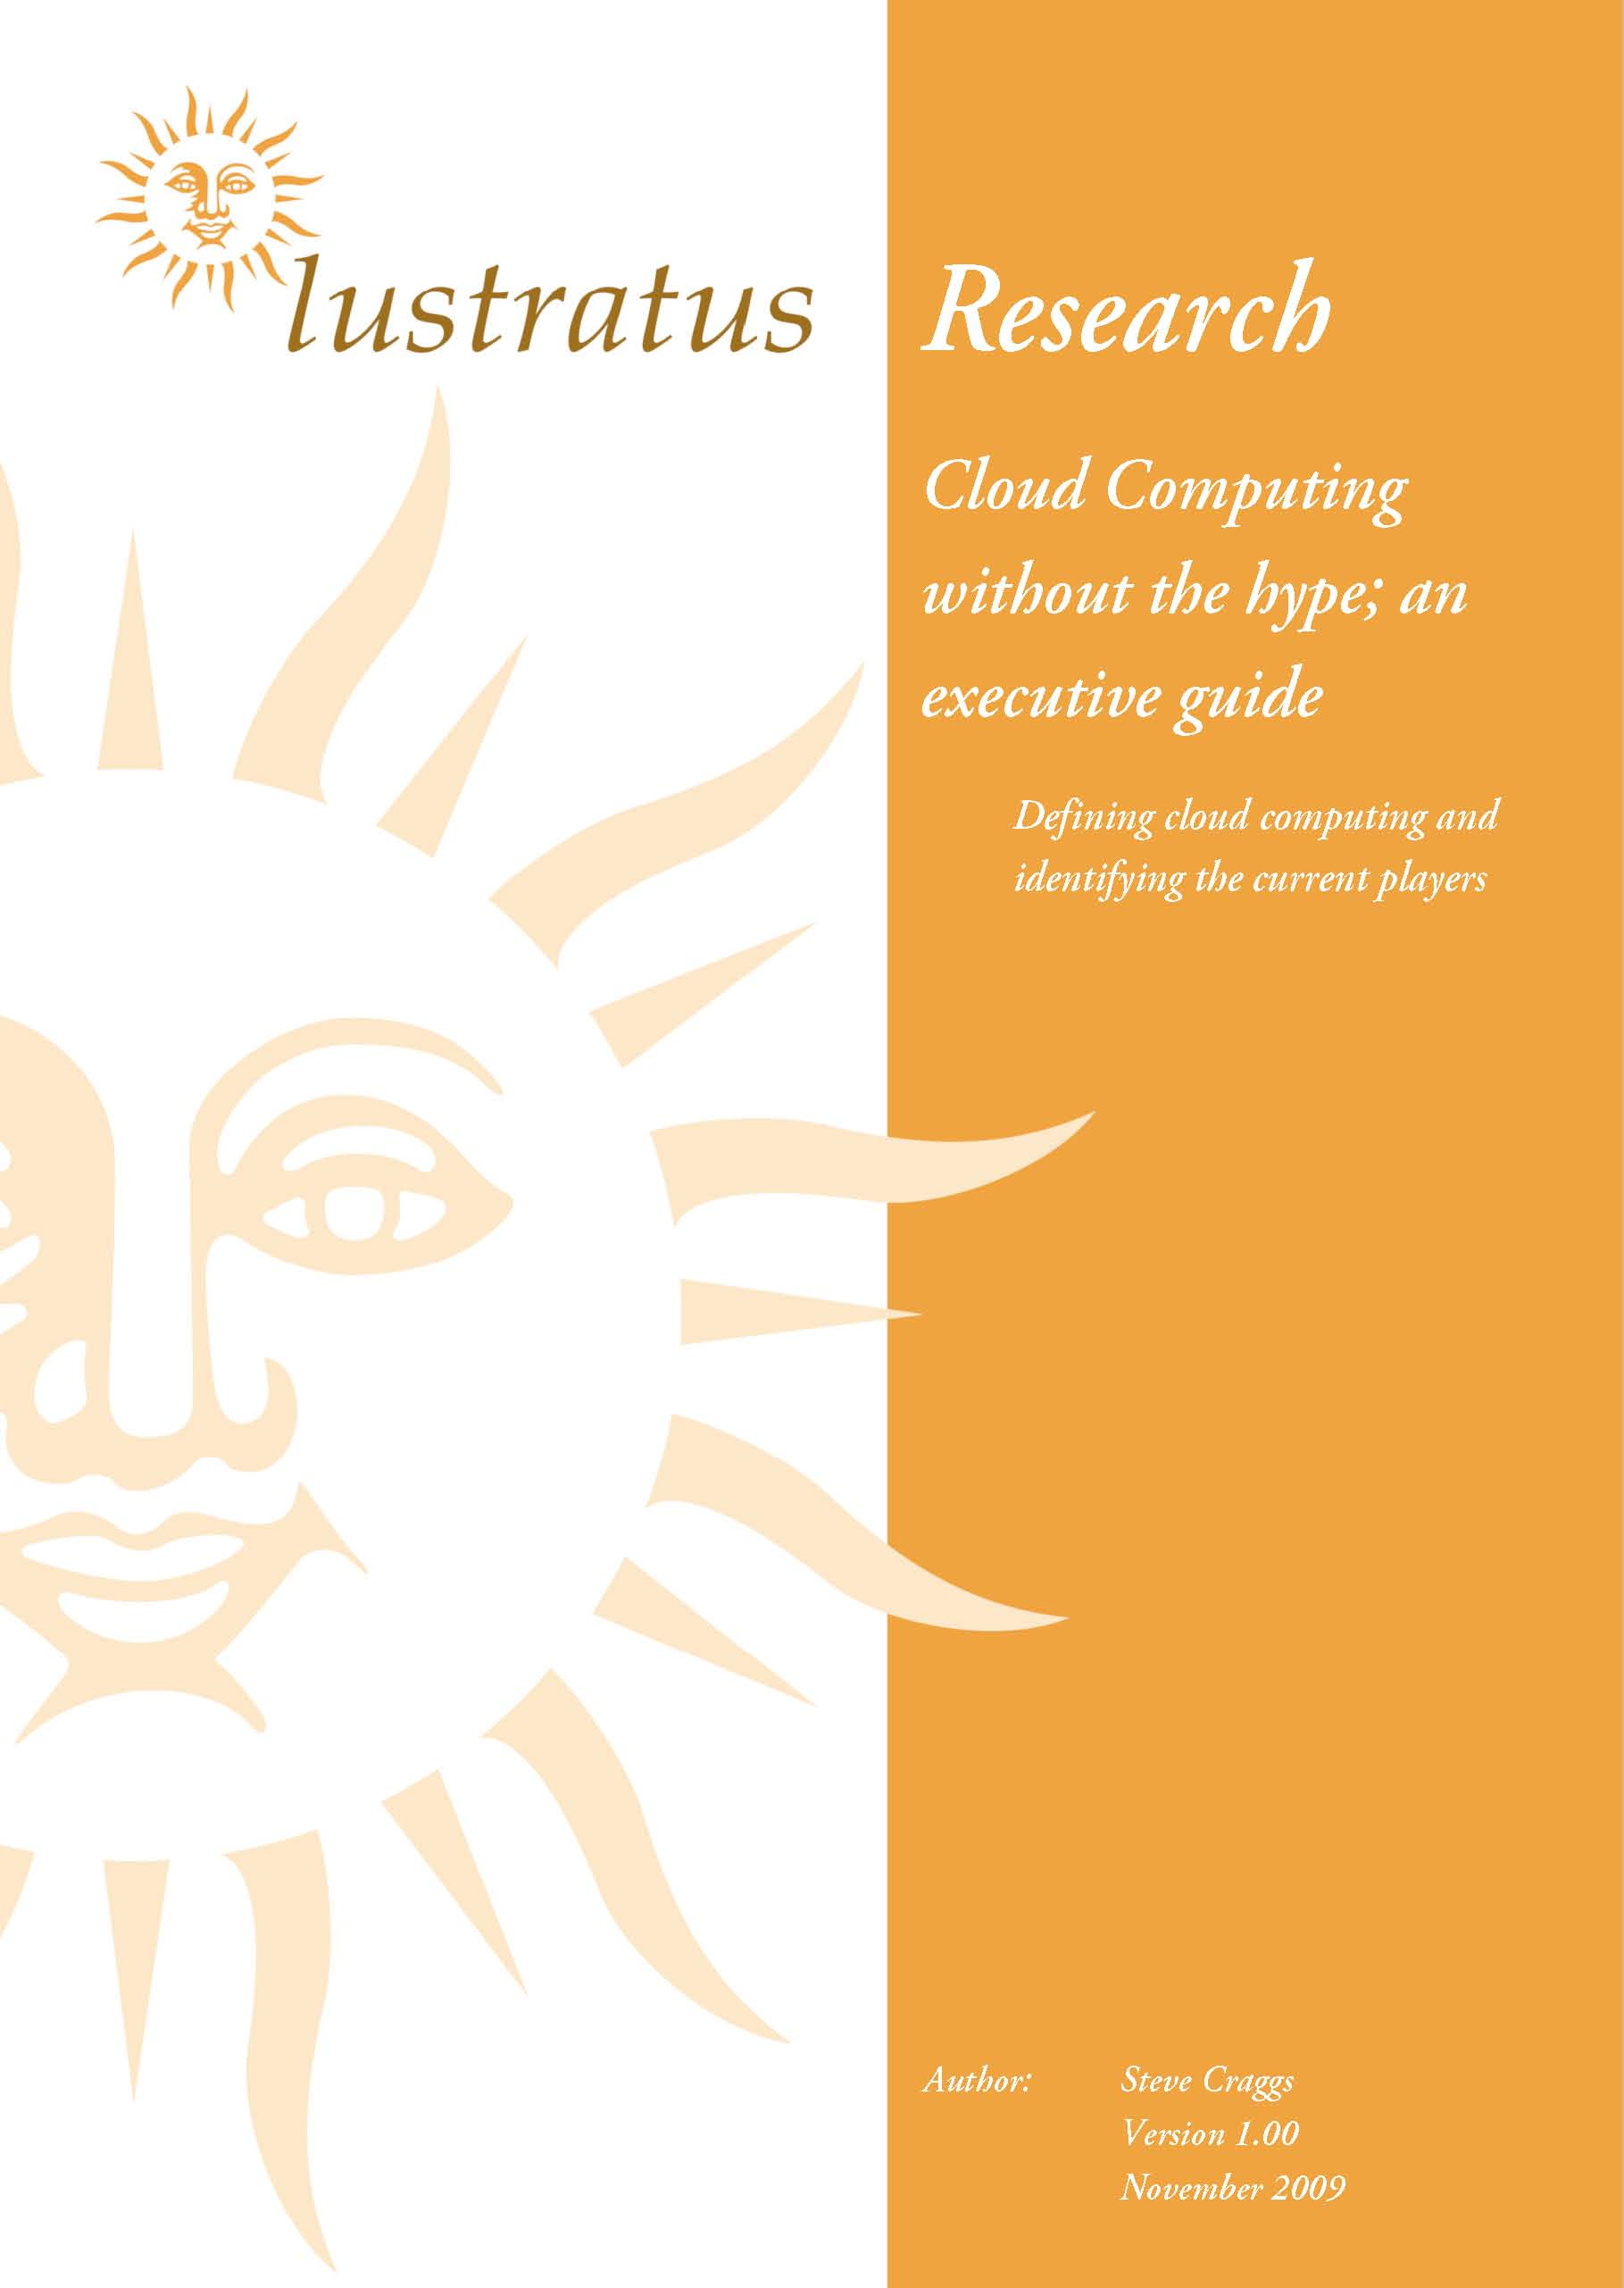 Pages from Cloud Computing Without the Hype - An Executive Guide (1.00 Slideshare)